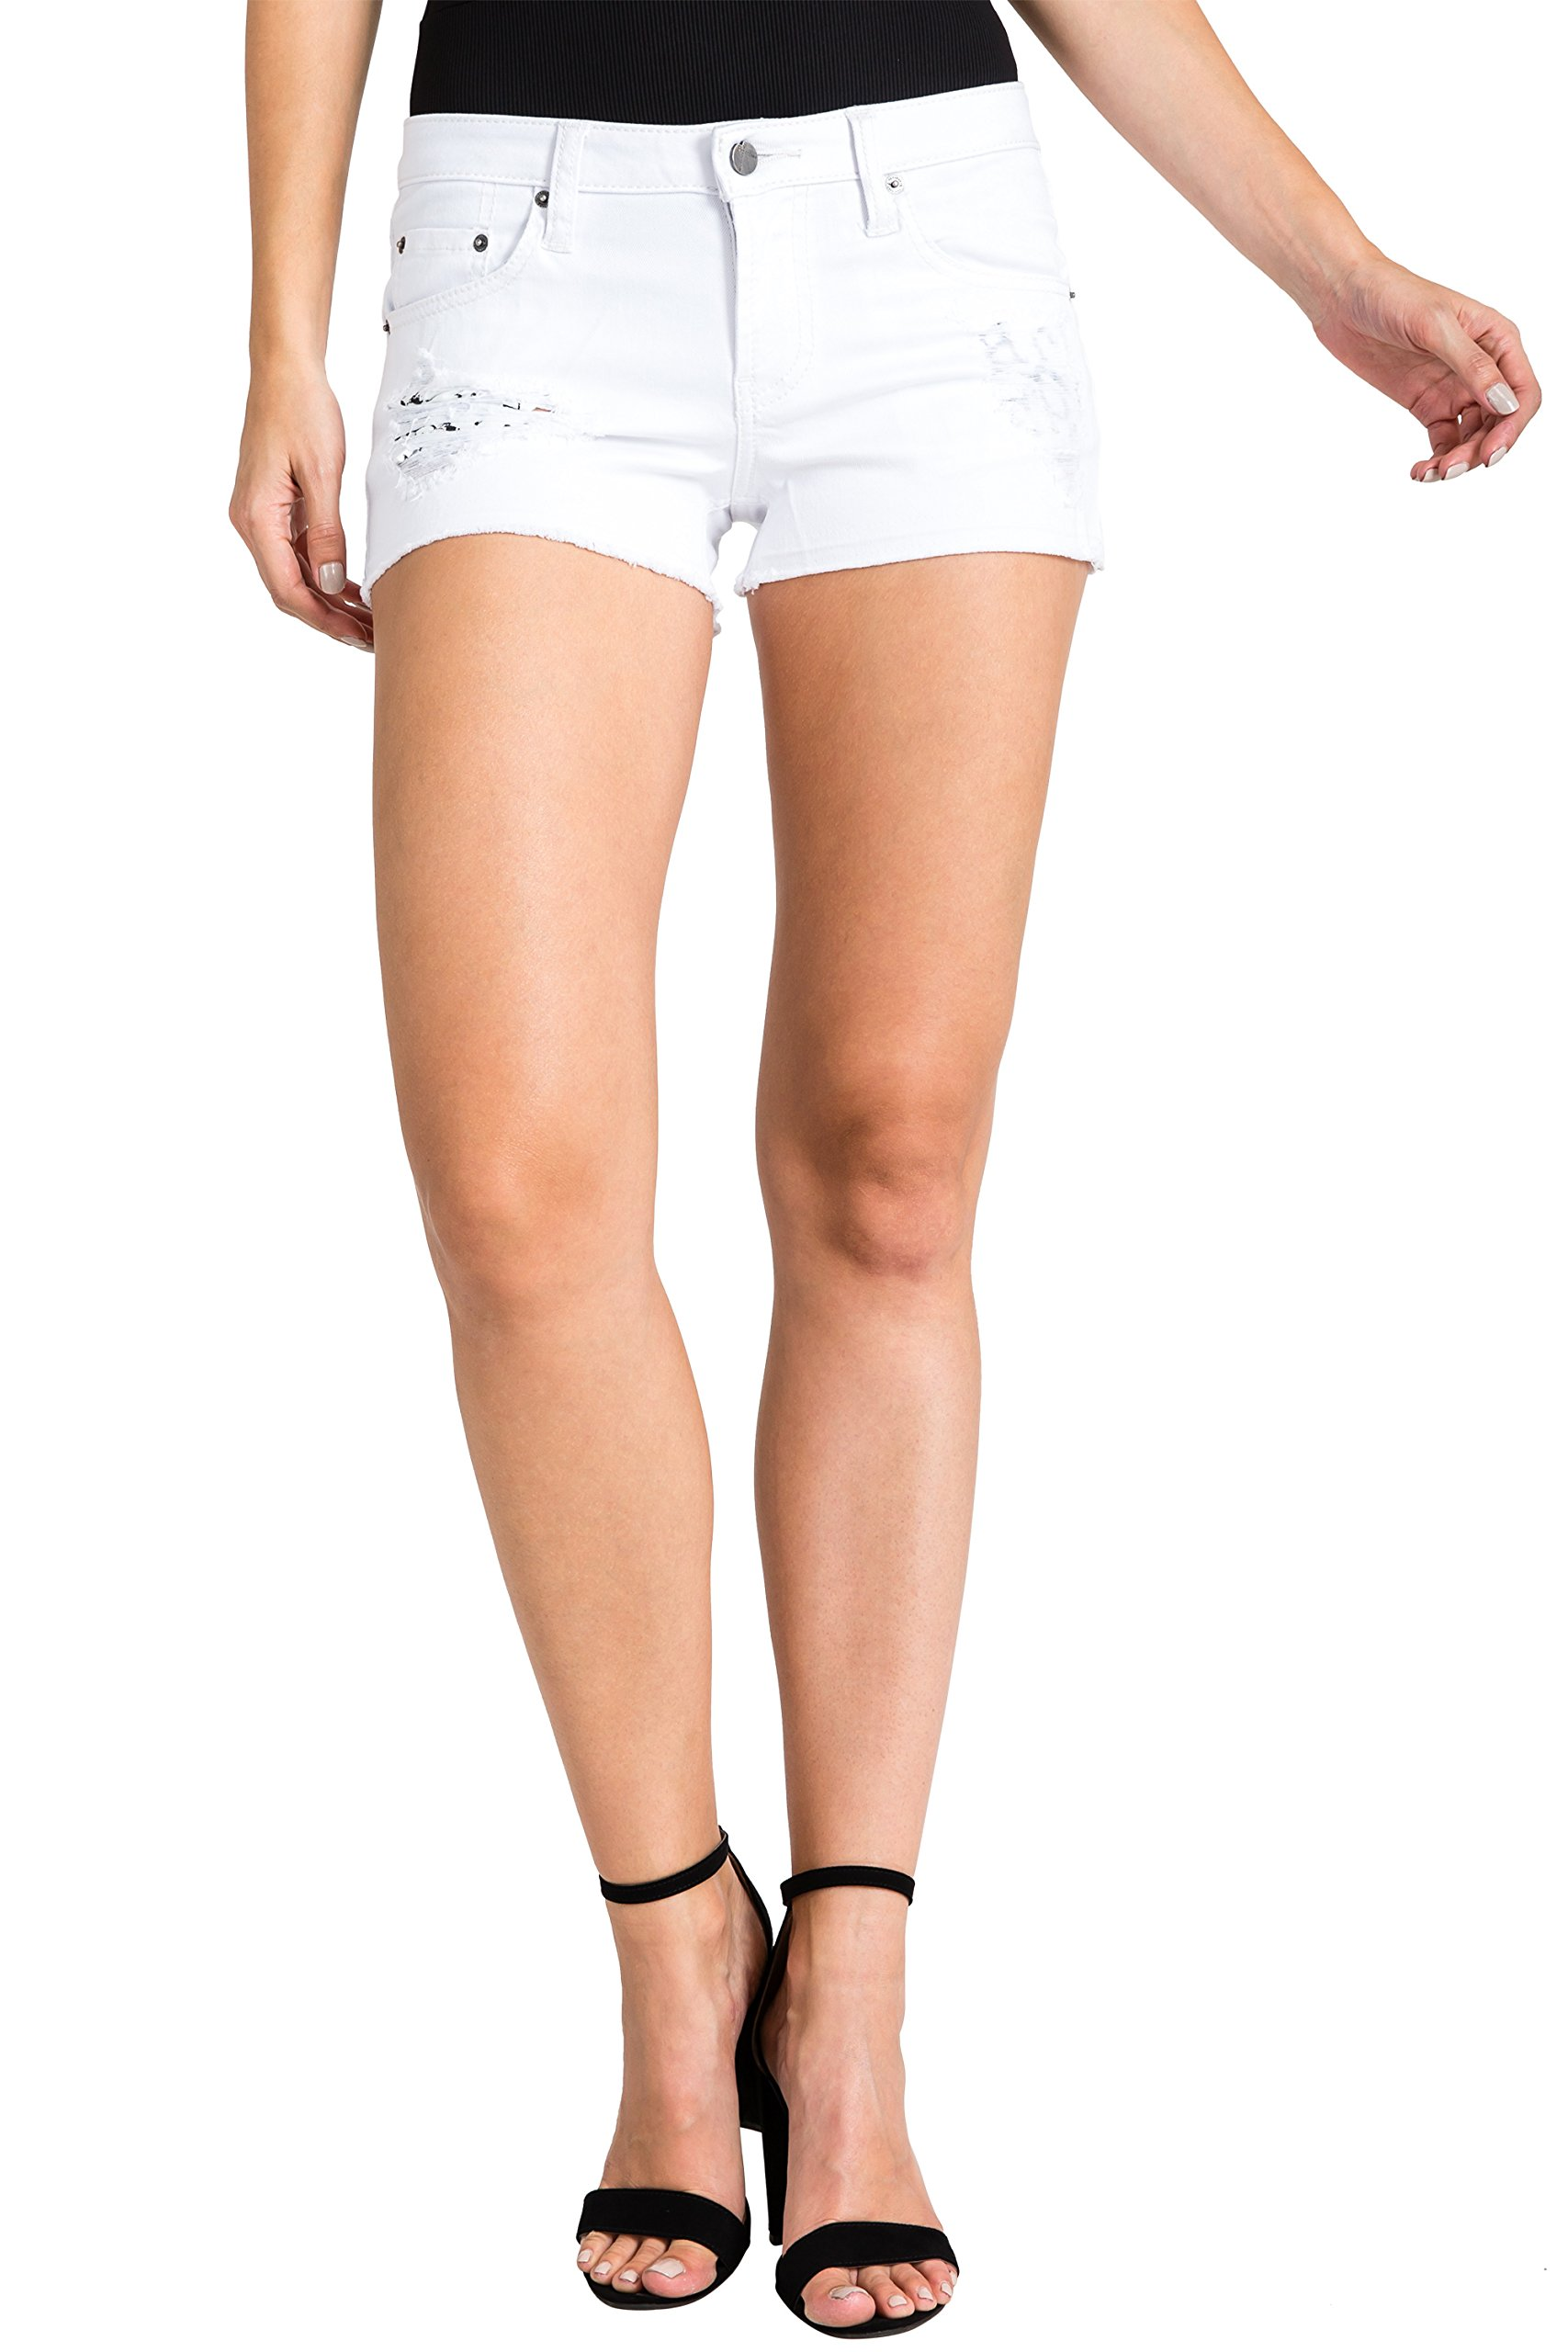 Standards & Practices Women's White Raw Edge Destroyed Stretch Denim Short Size 27 x 2.5Length